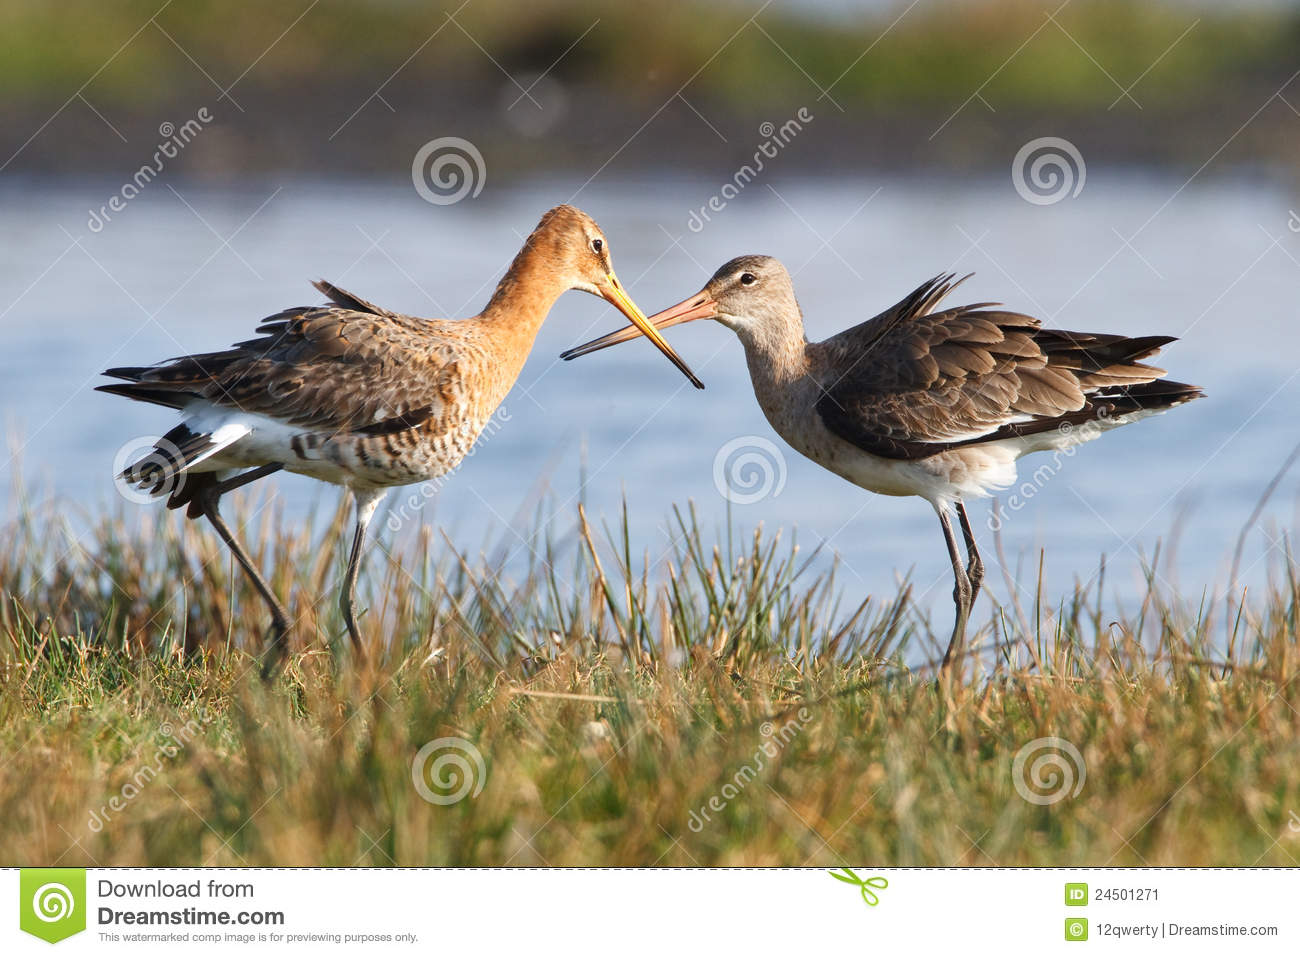 Birds in wetlands